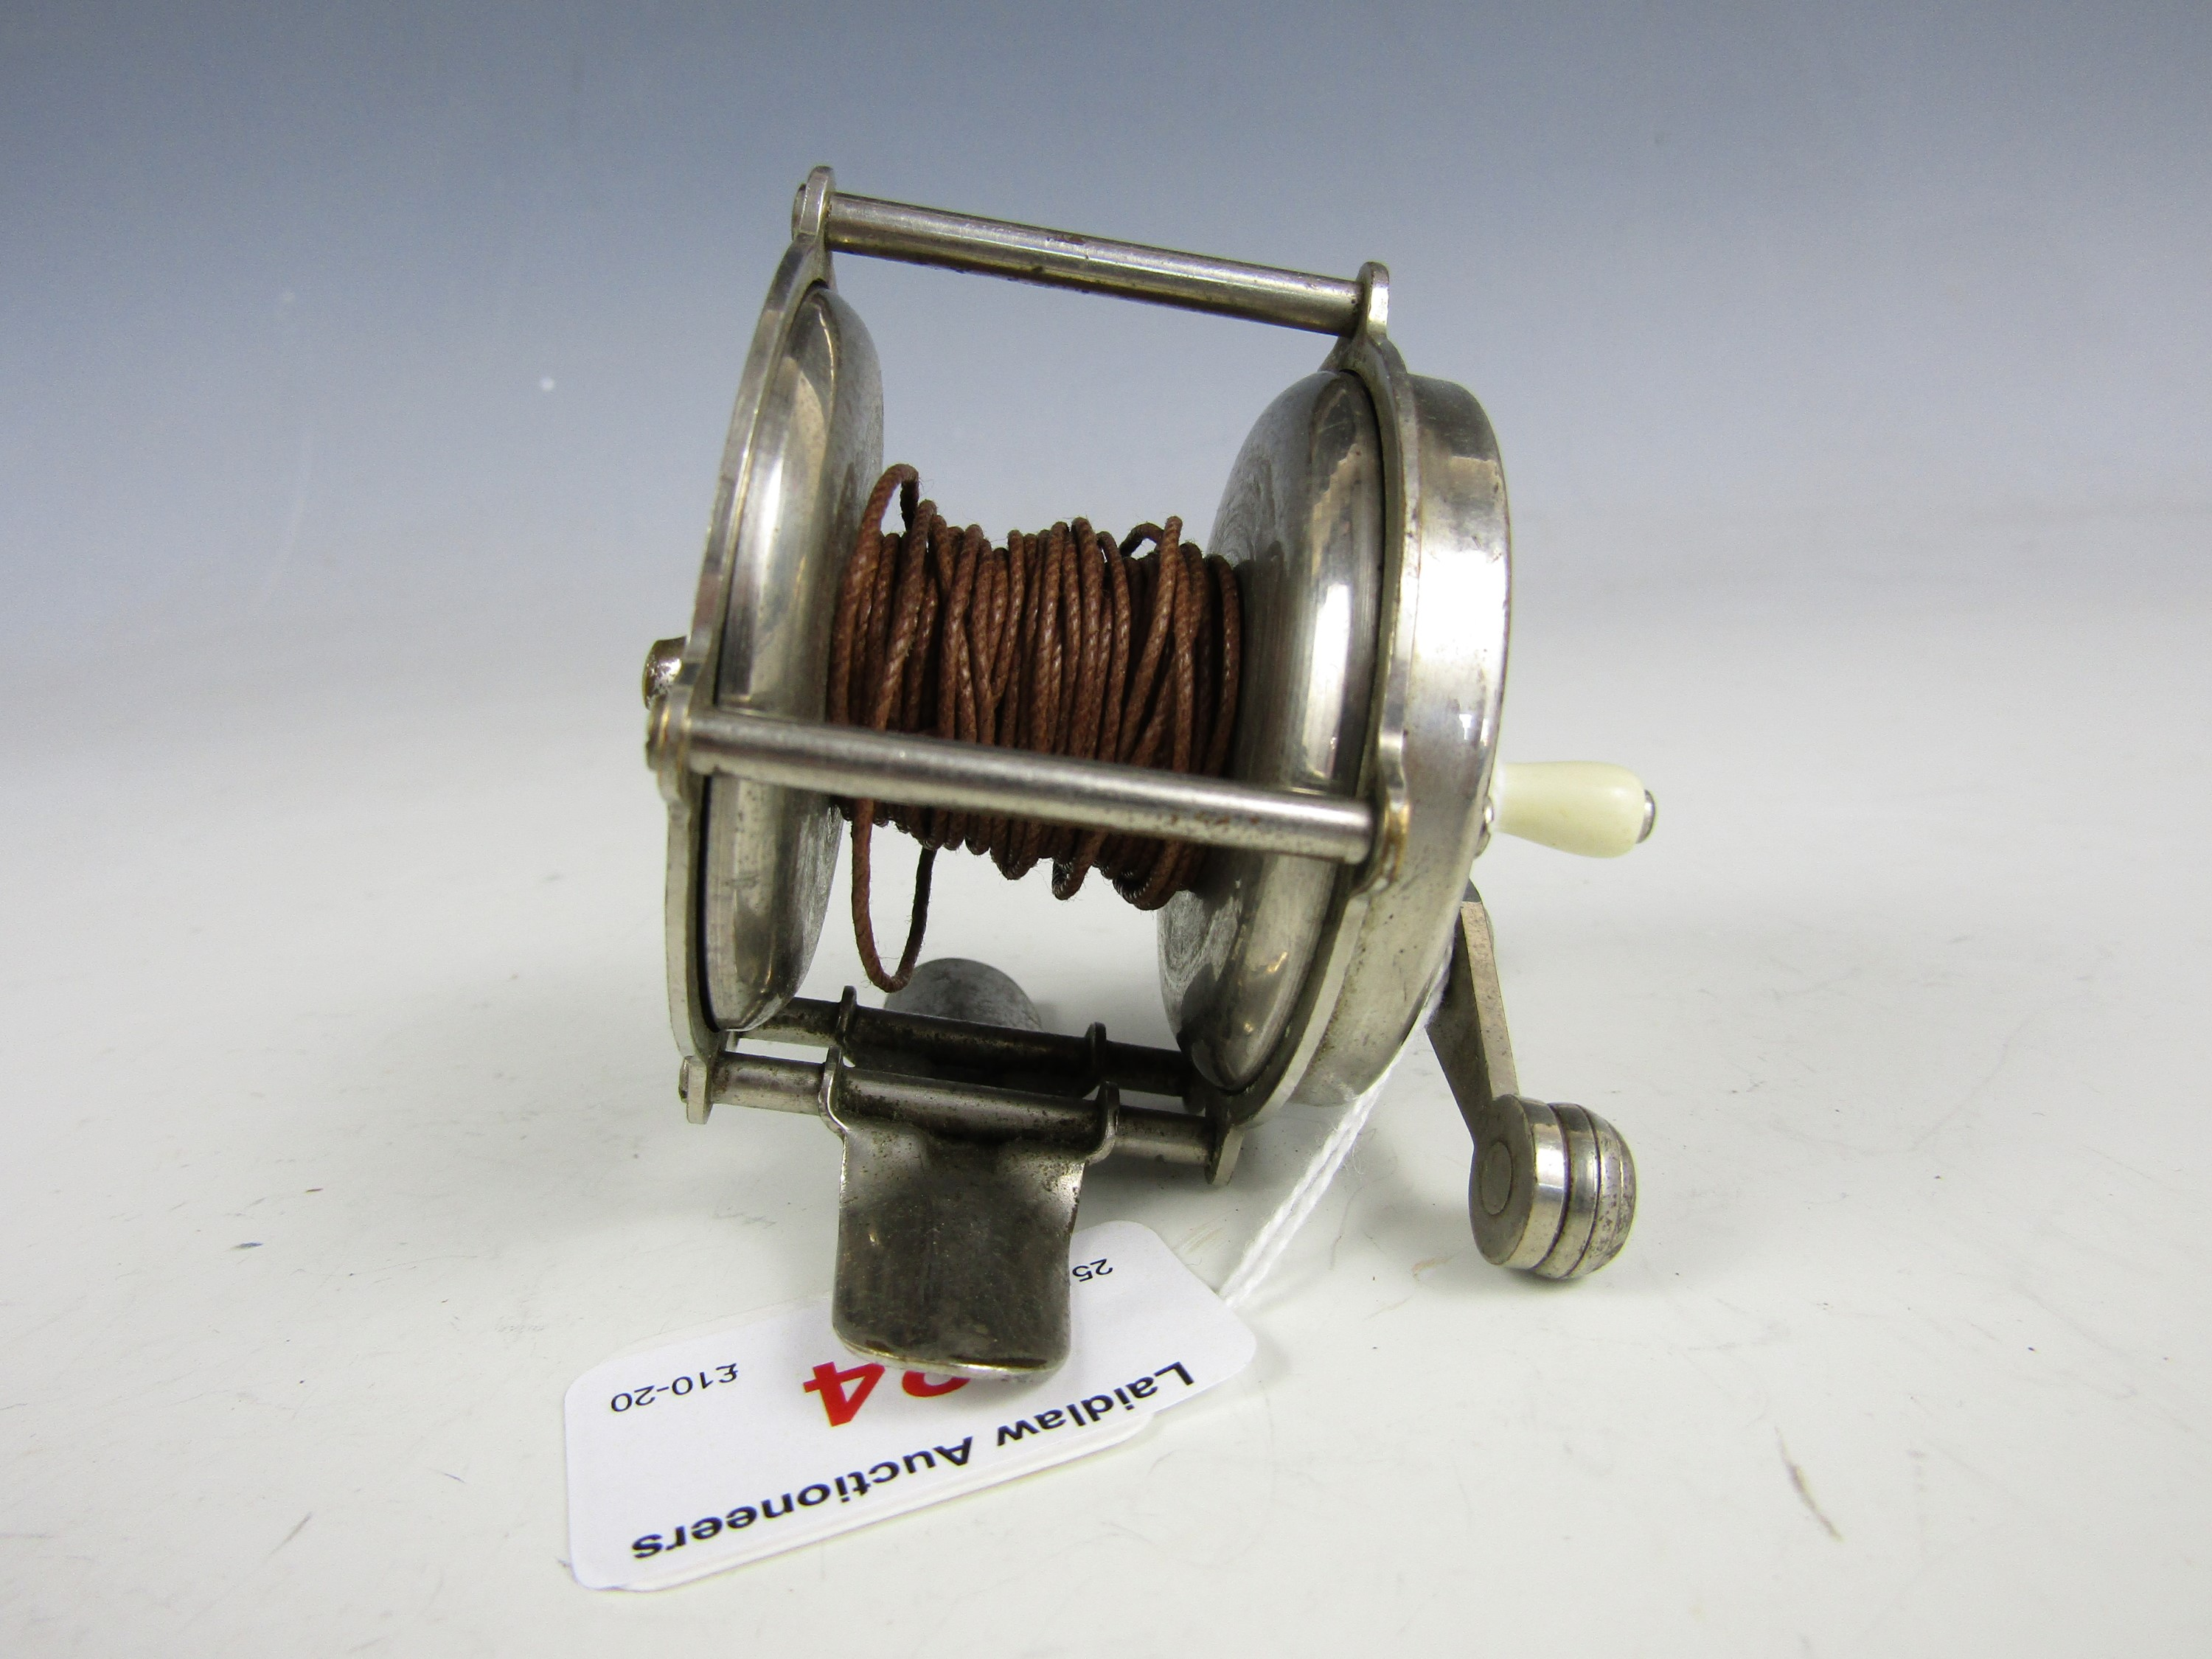 Lot 24 - A vintage Portage Atlas fishing reel